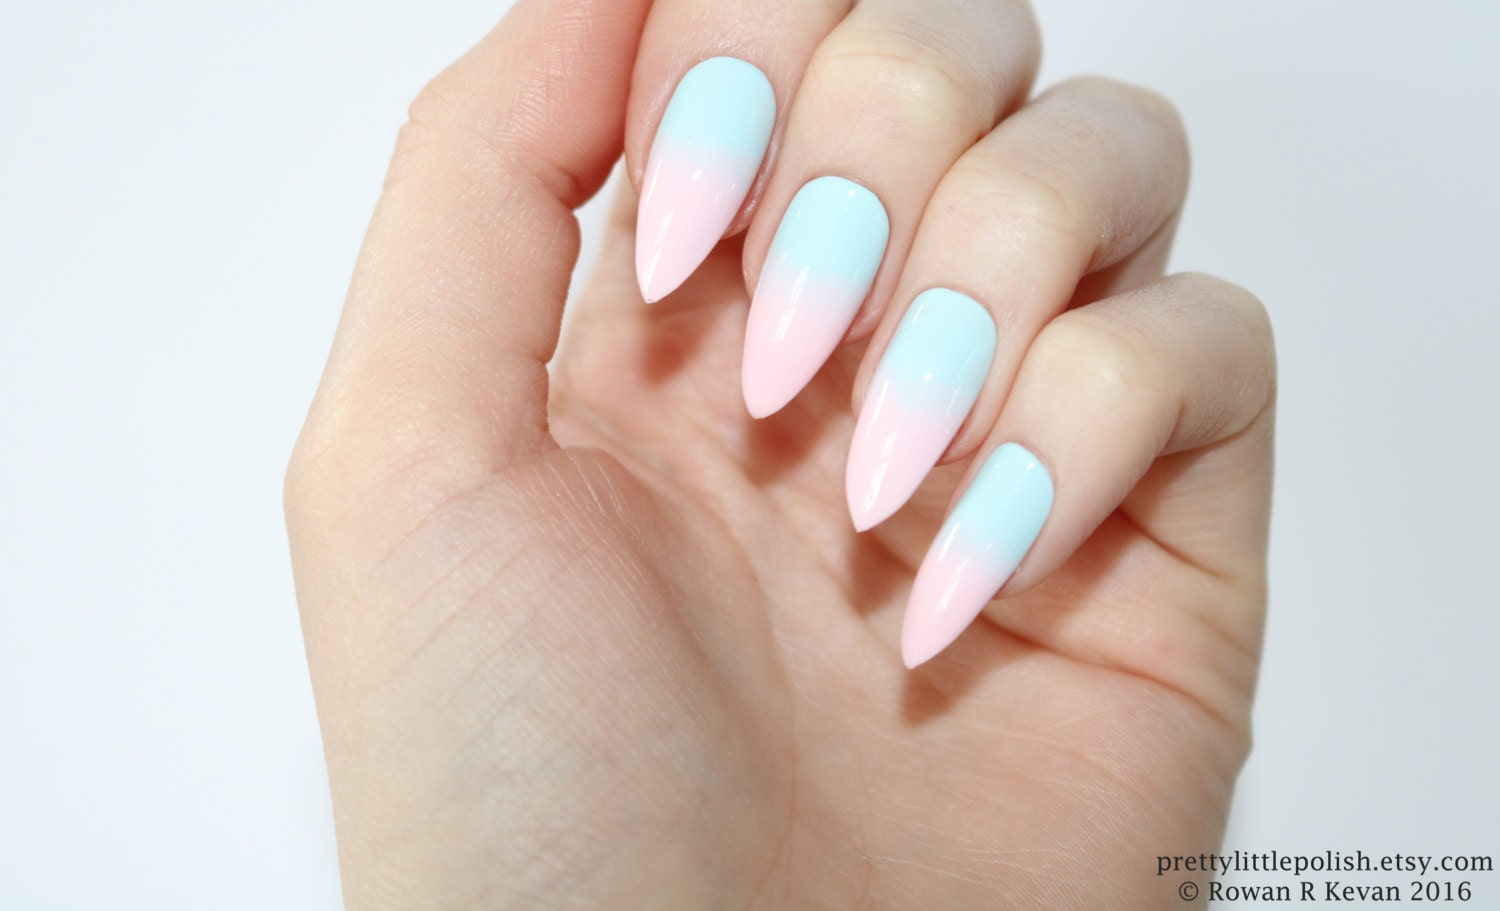 Stiletto nails Pastel ombre stiletto nails Fake nails Press